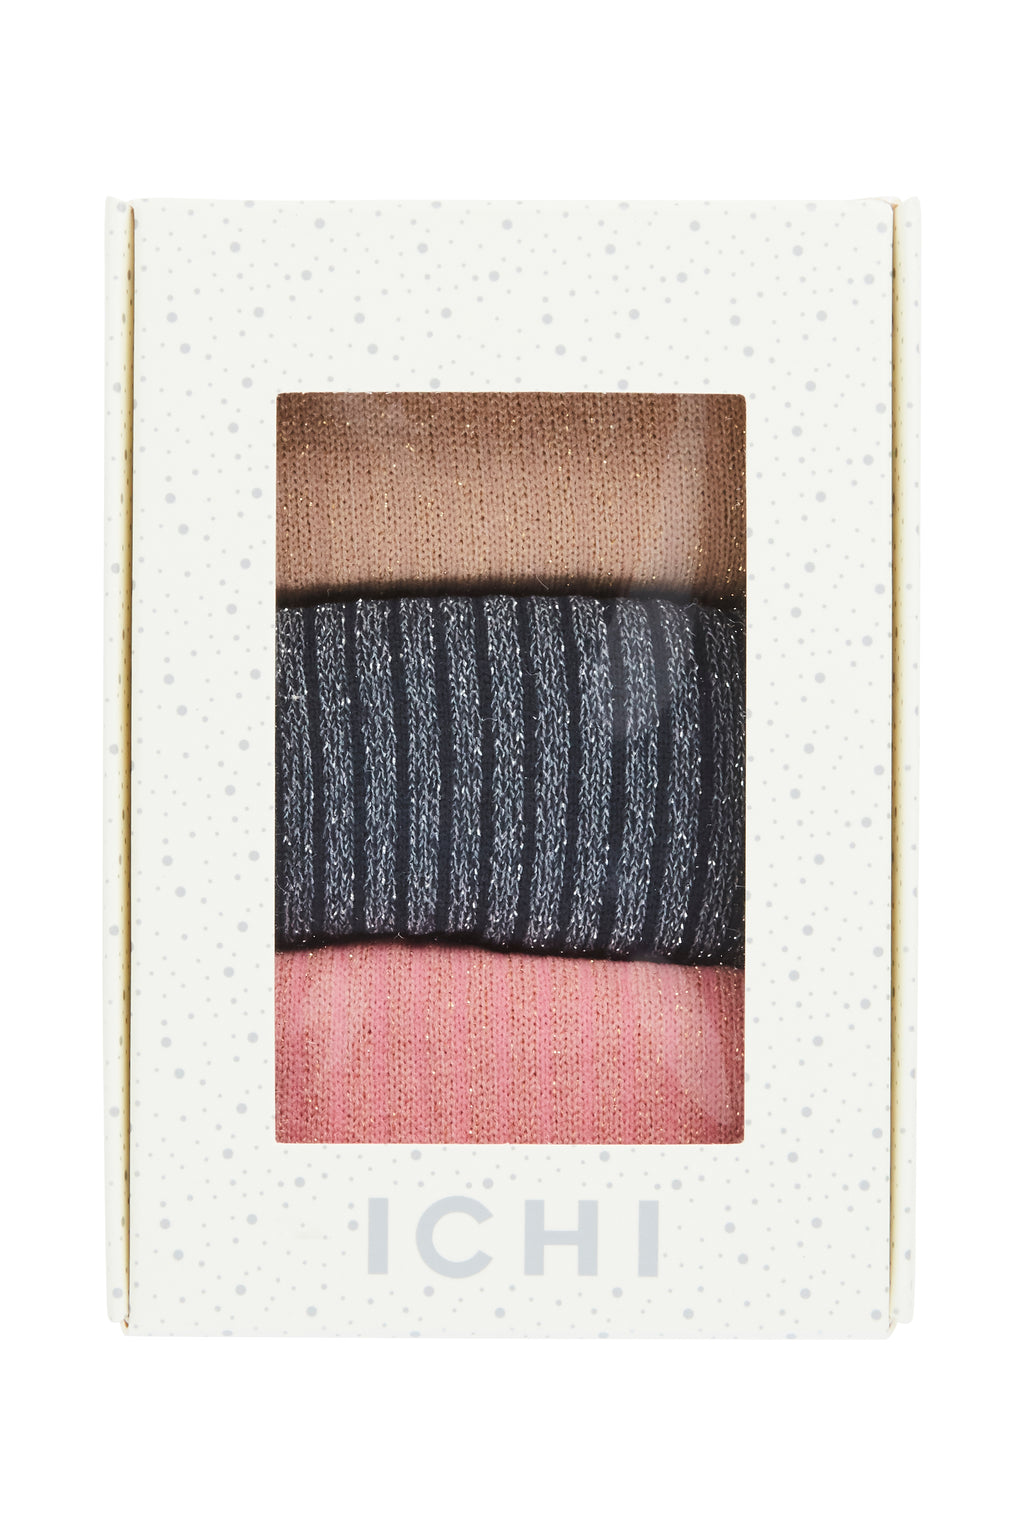 ICHI - SOCK BOX ARLES - Styling by Claudia